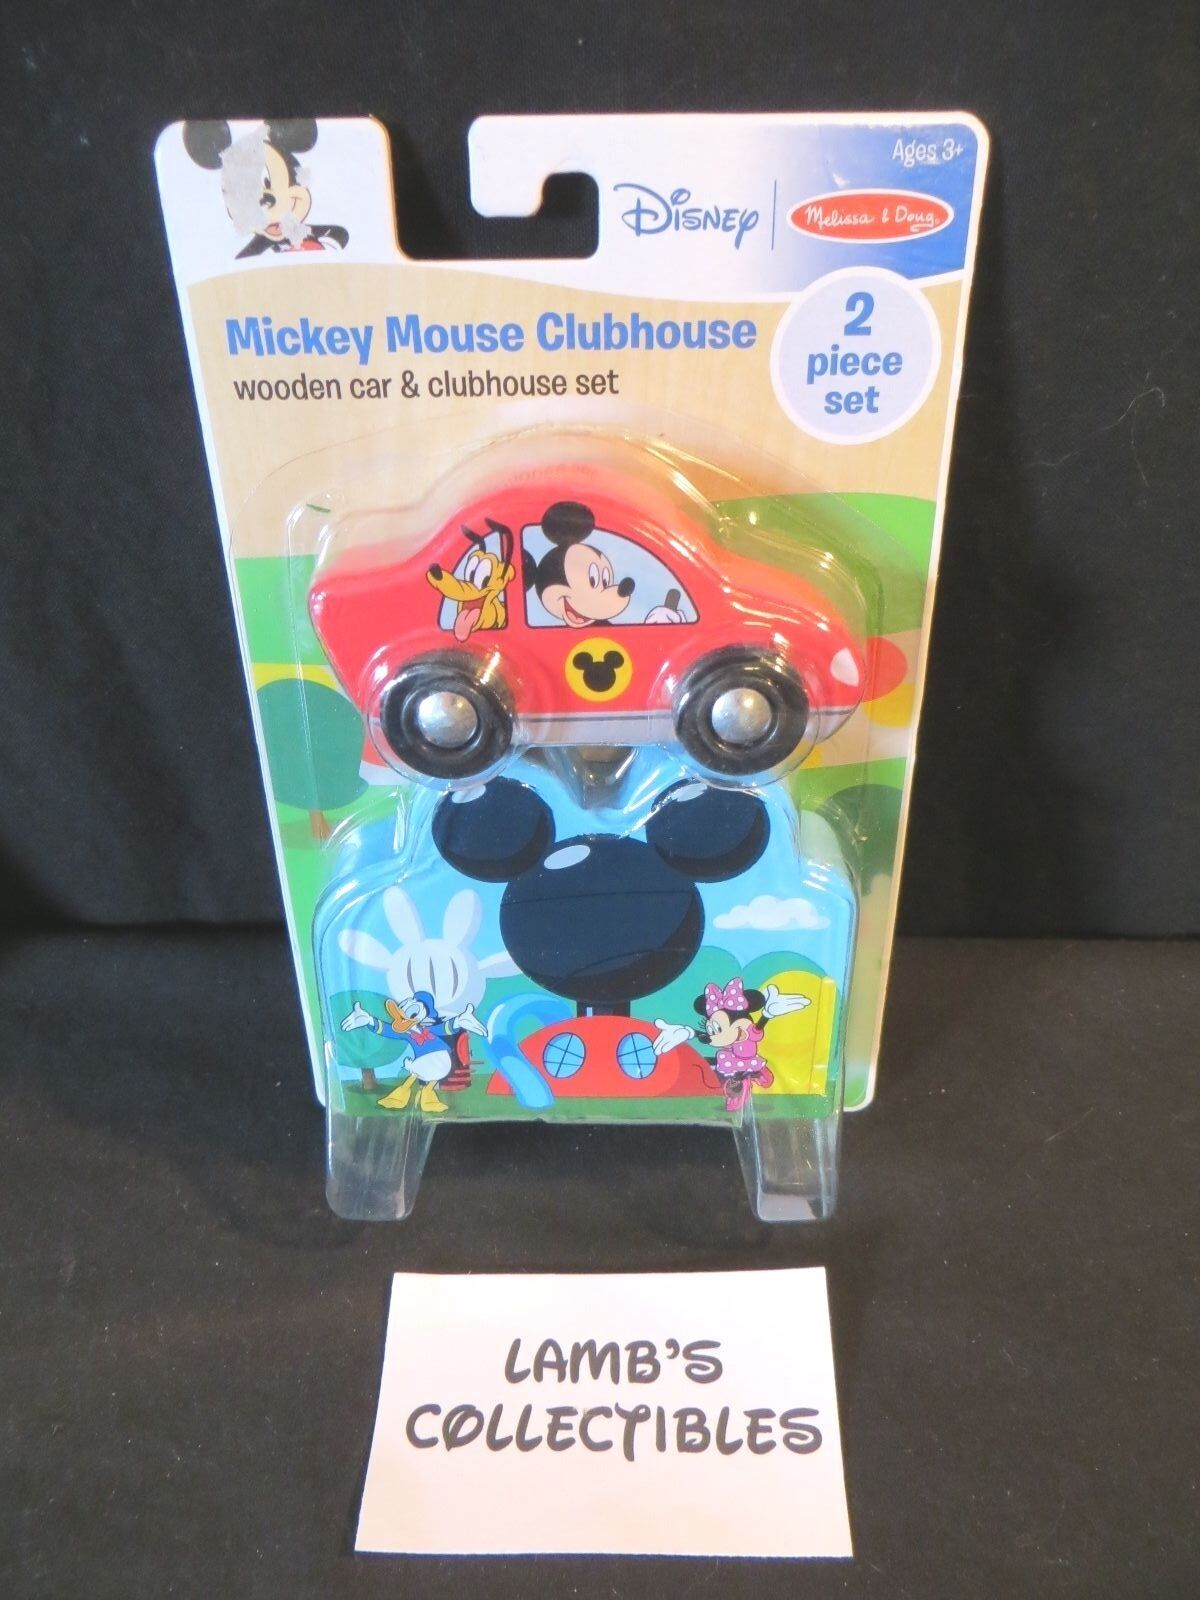 Primary image for Melissa and Doug Disney Mickey Mouse wooden clubhouse & car 2 piece set #7683